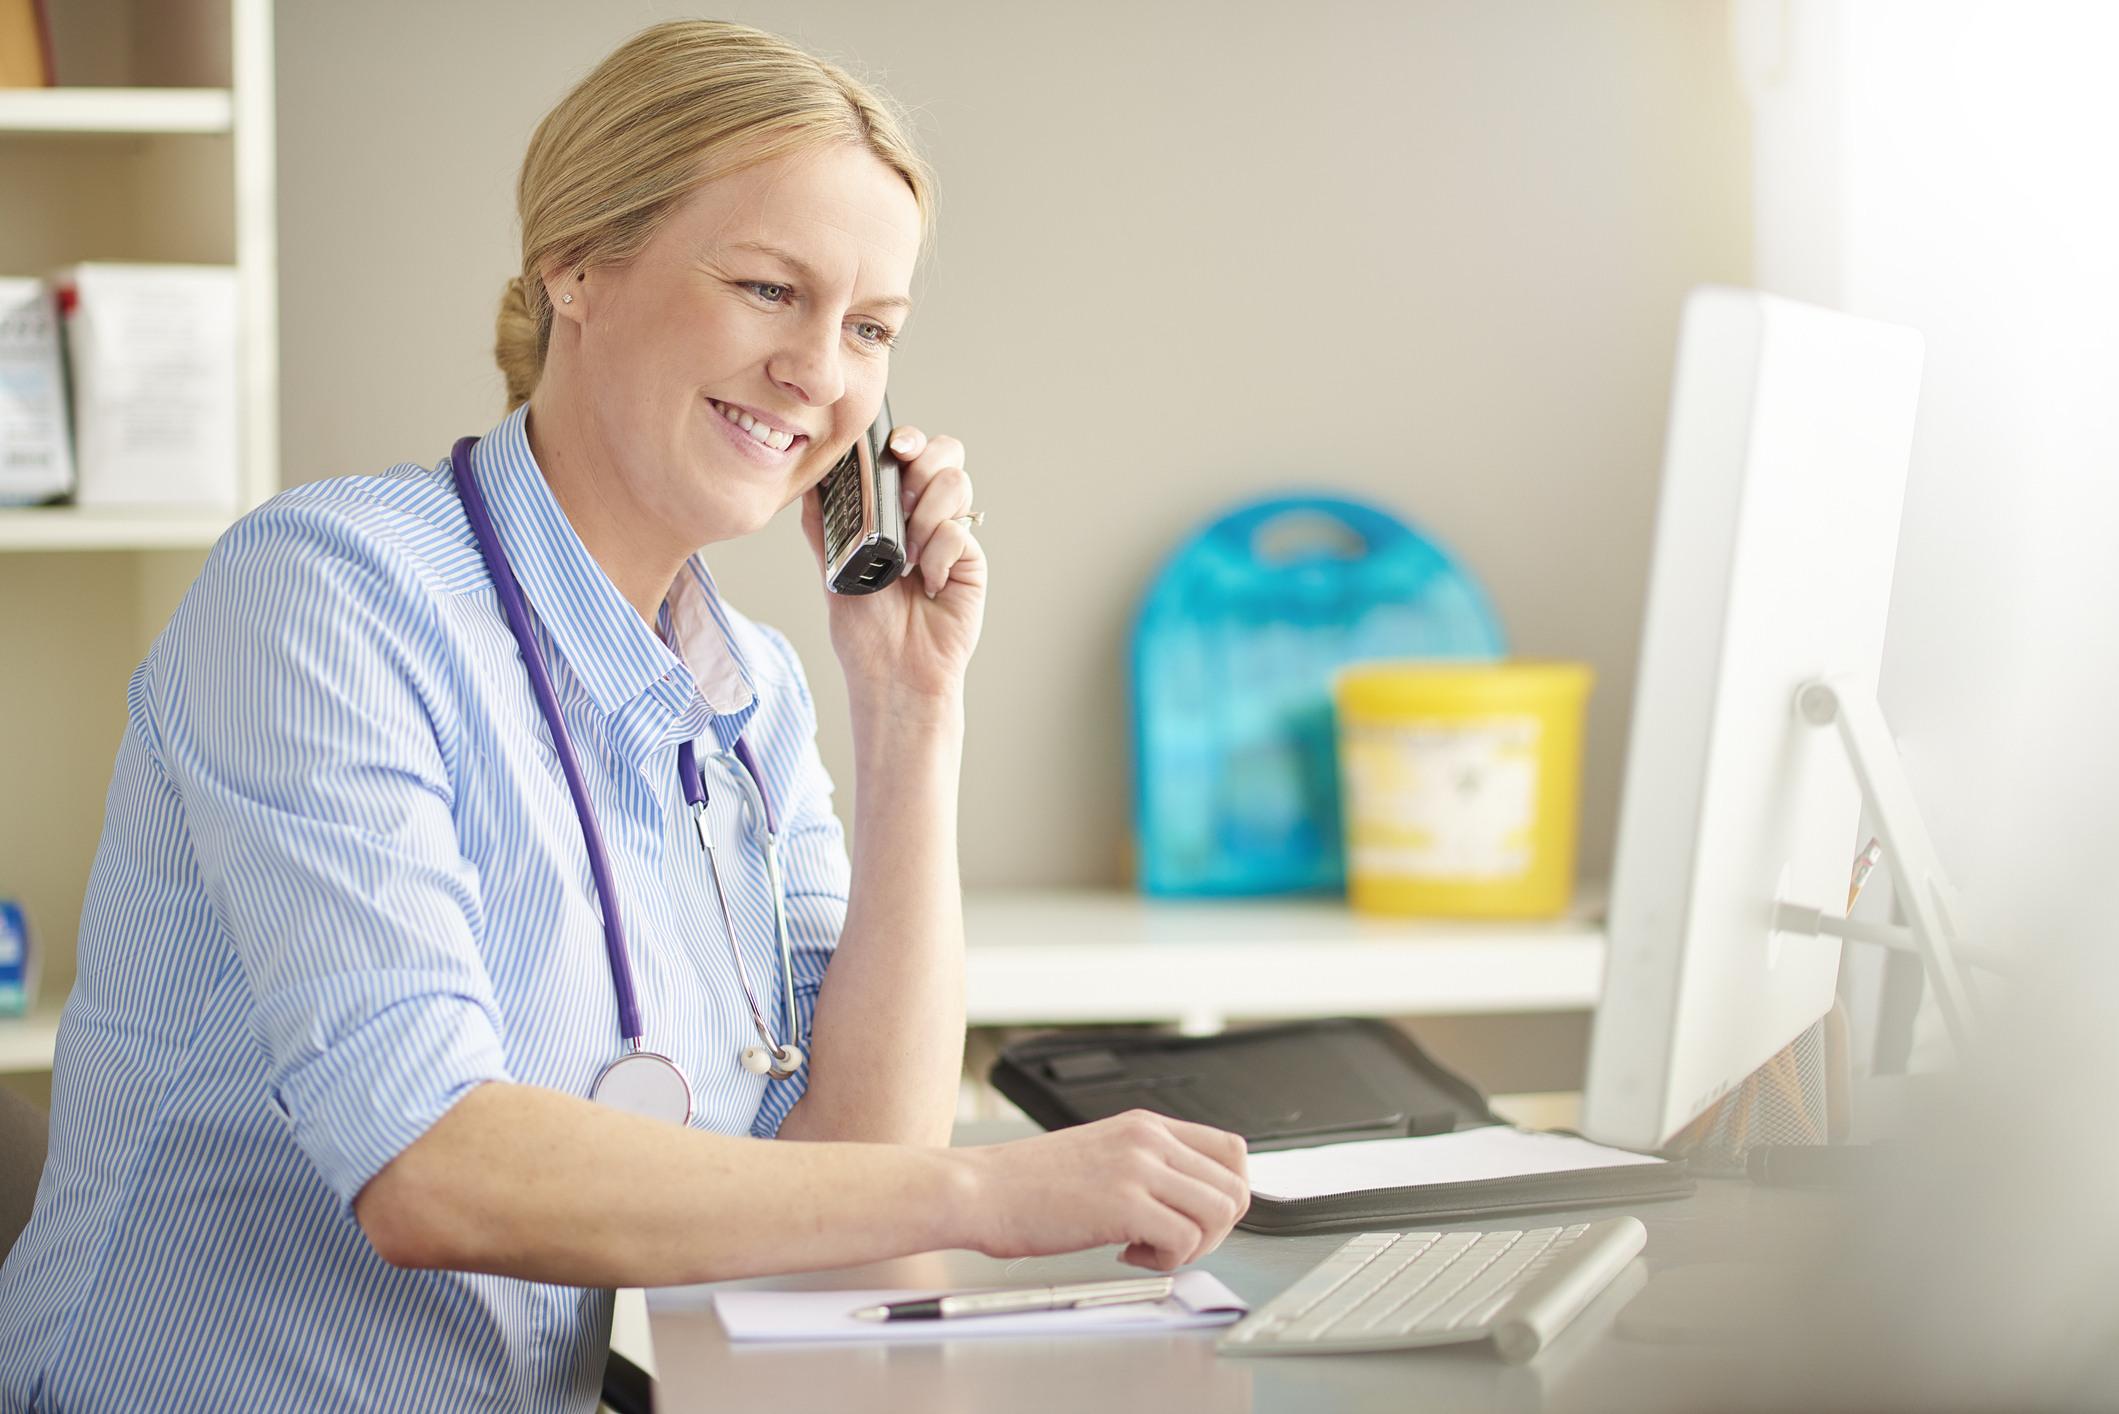 Female doctor at her desk, smiling while using the phone